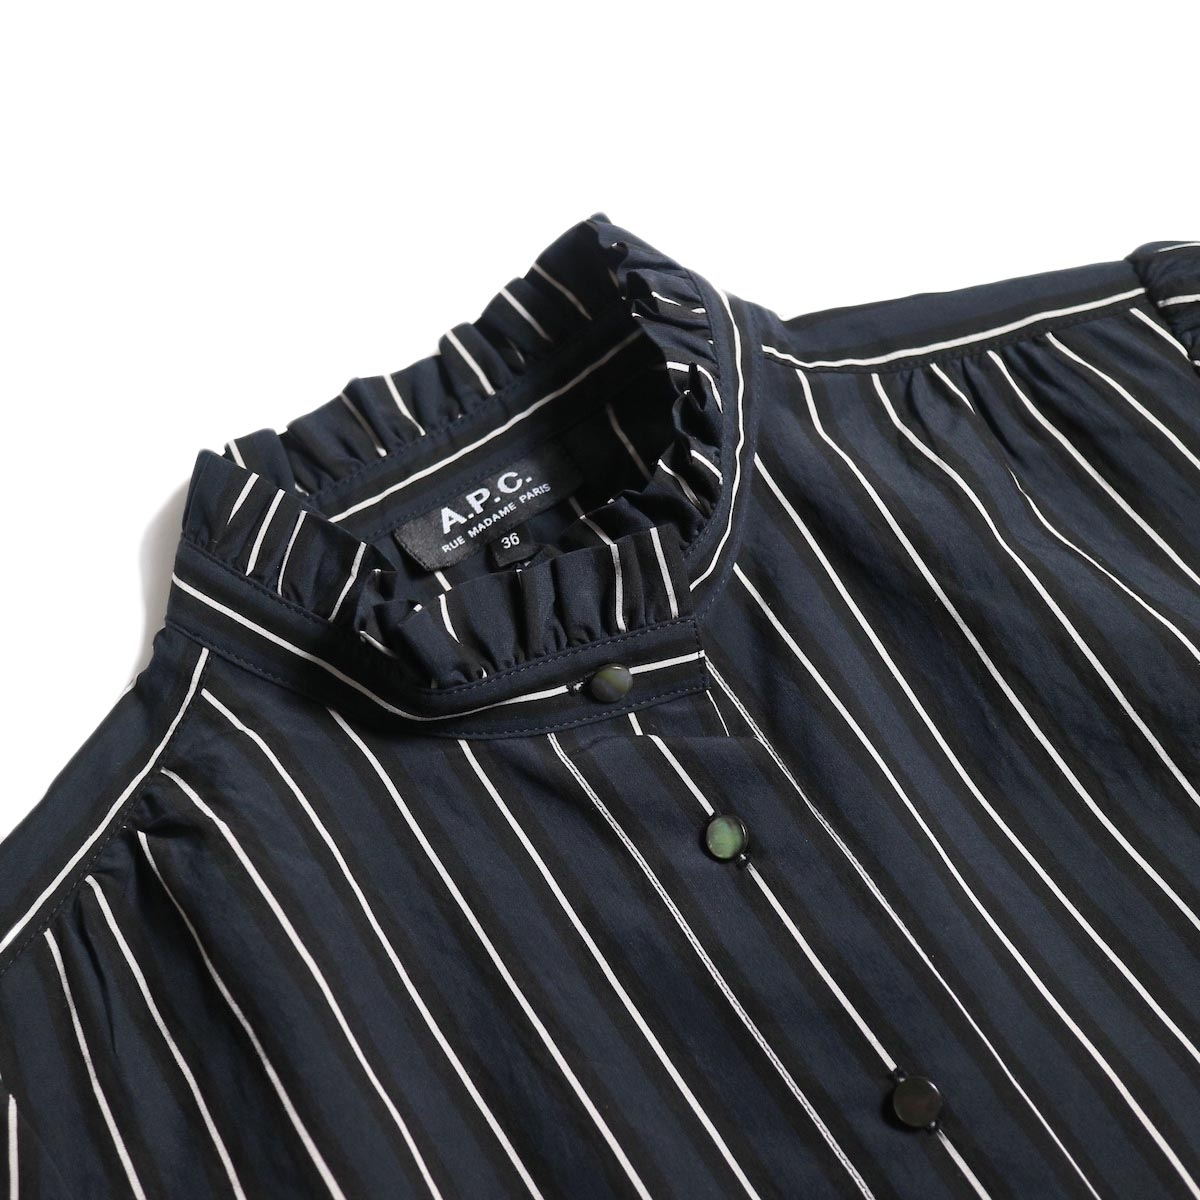 A.P.C. / St Germain ブラウス(Dk.Navy)襟